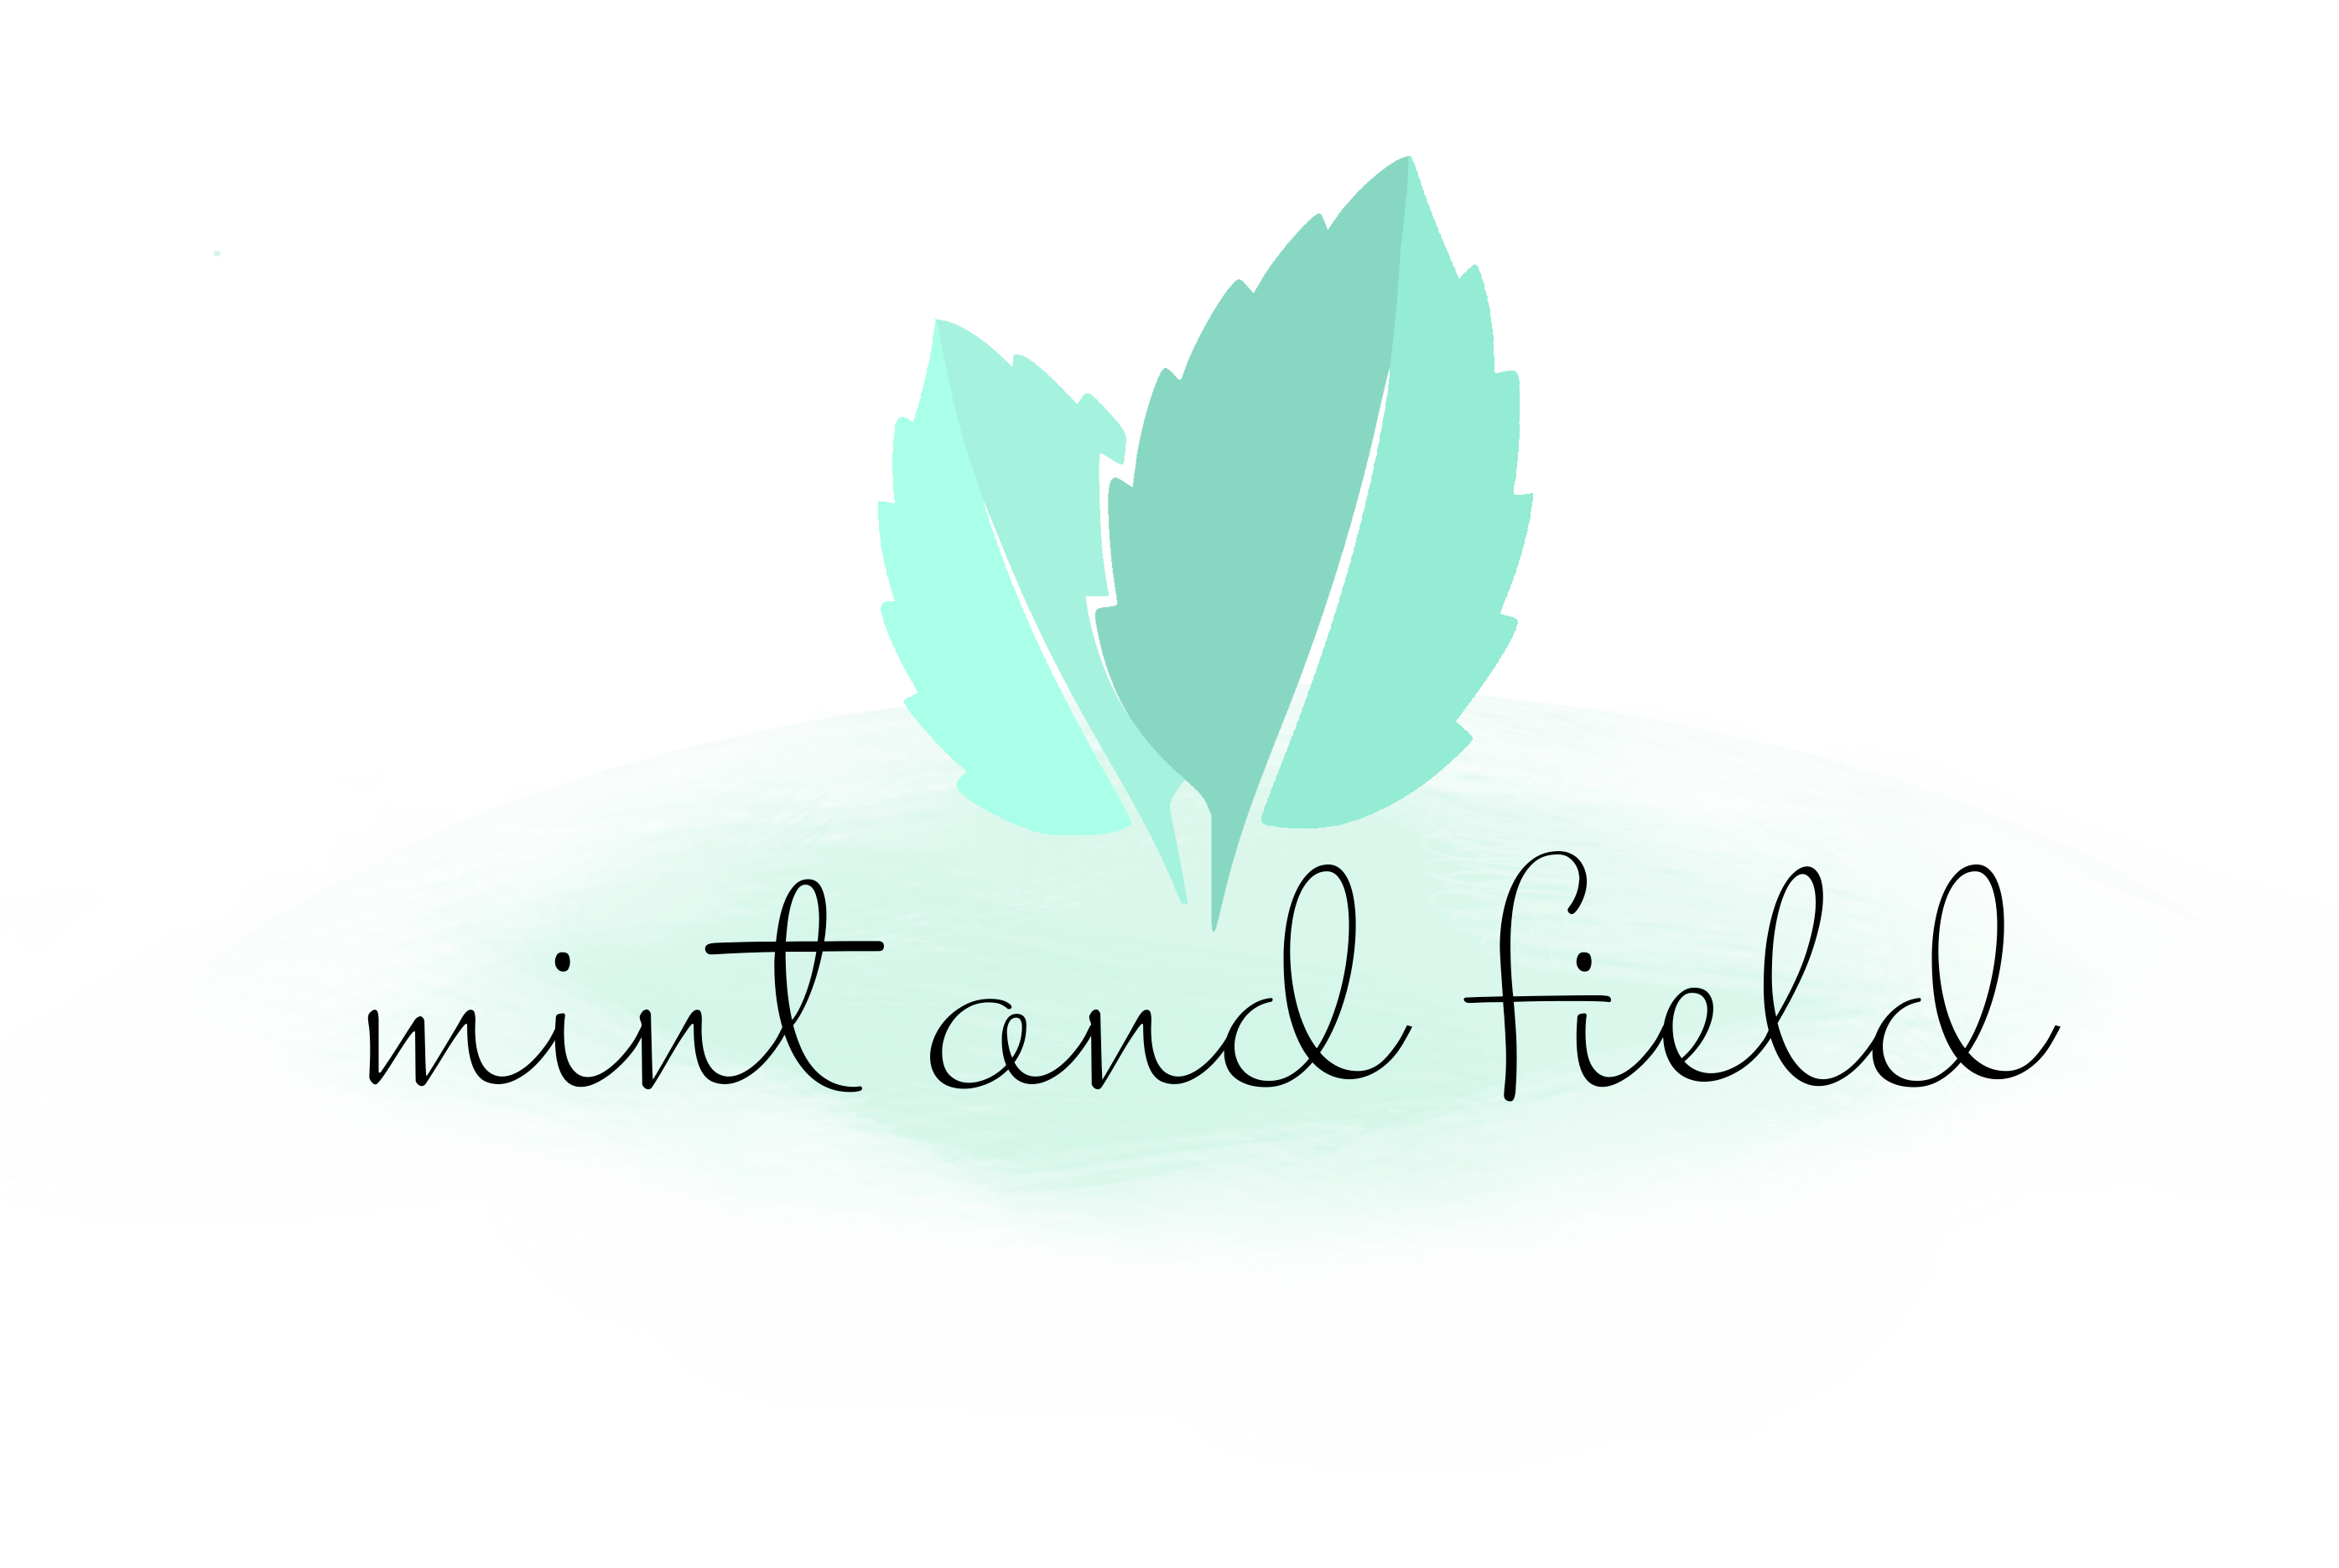 mint and field, rodan and fields png logo #5660